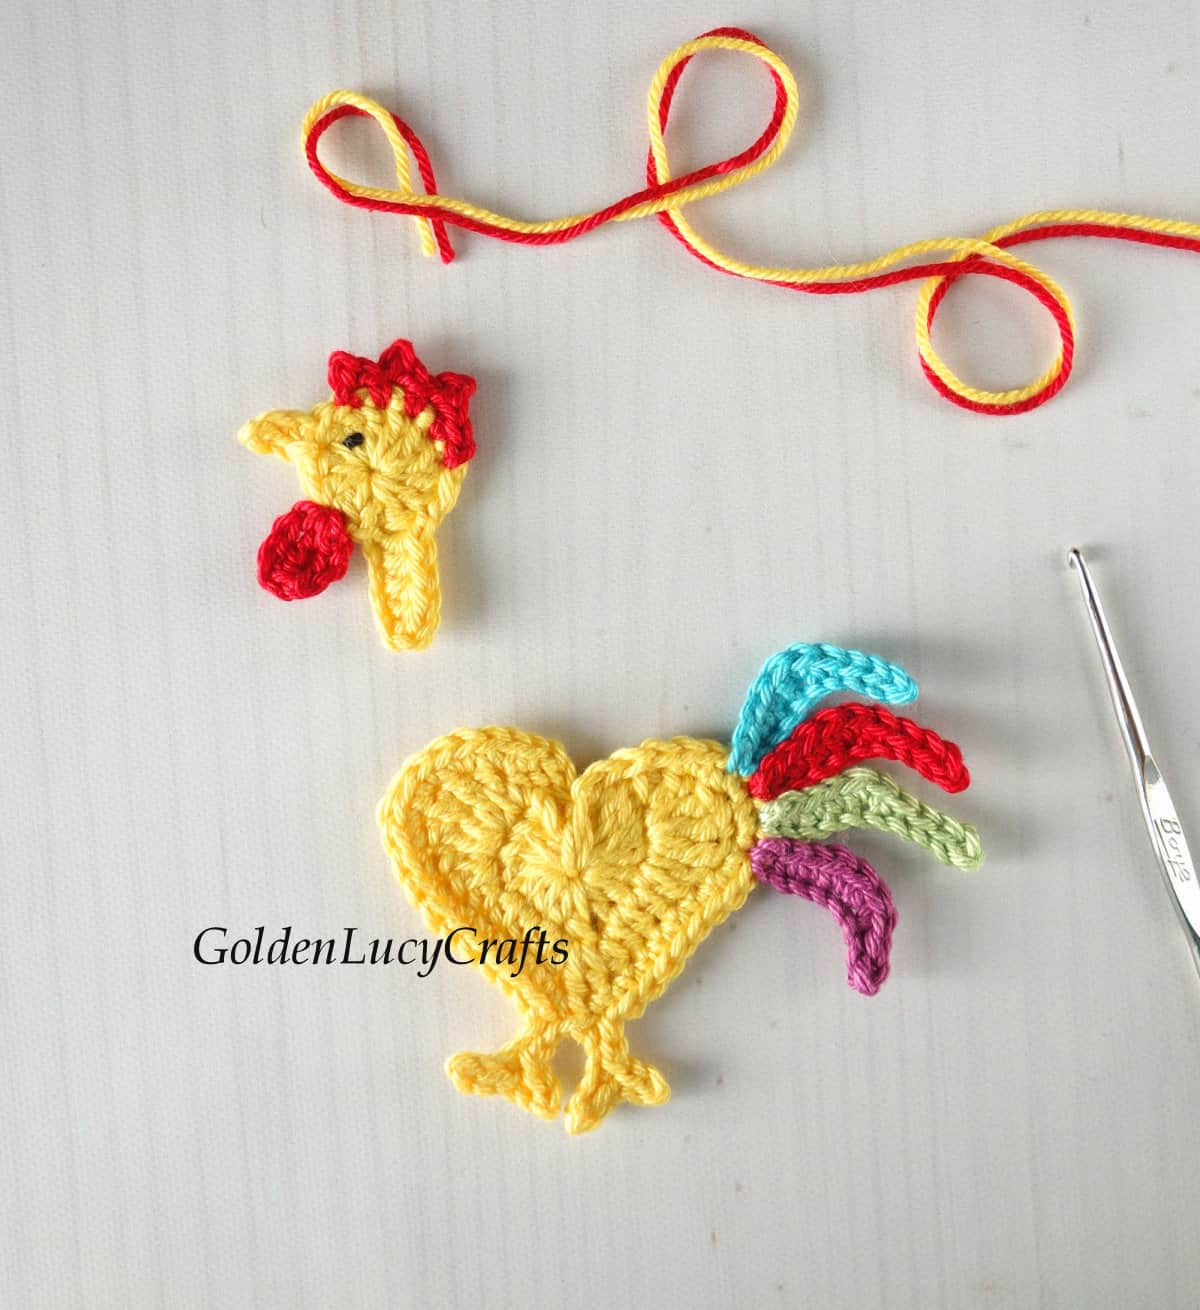 Parts of crocheted rooster applique.